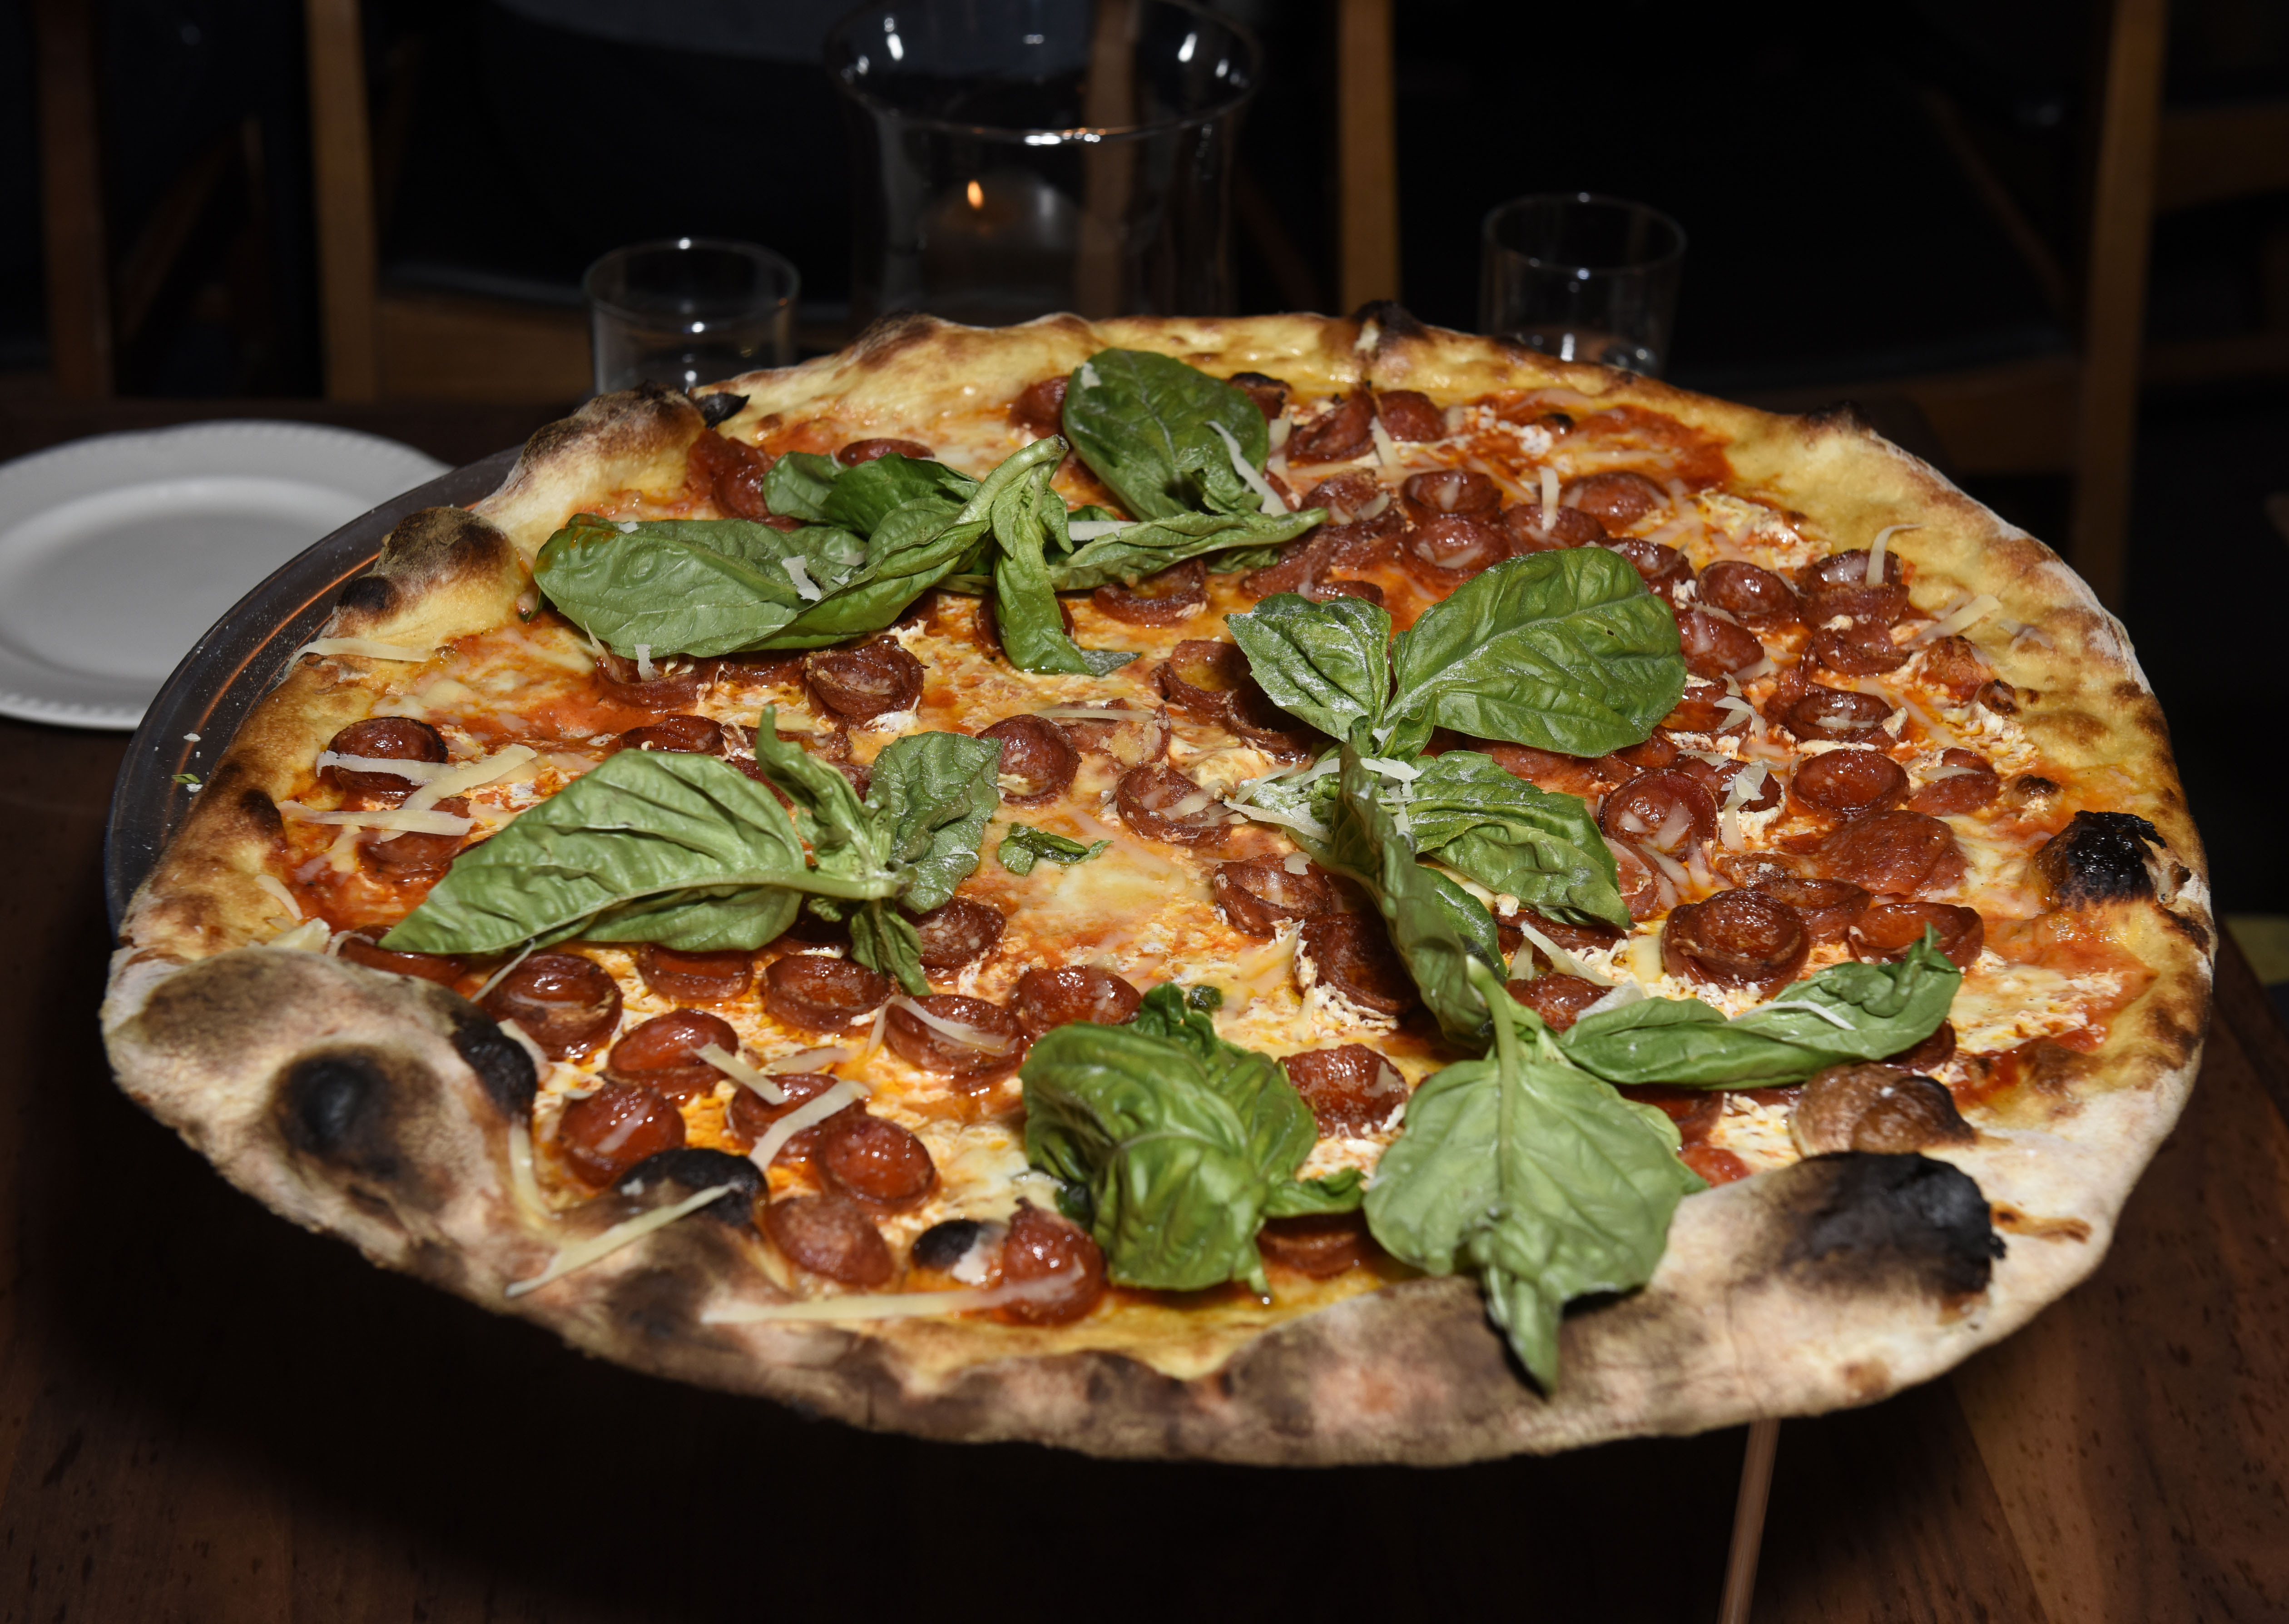 A pepperoni pie with green basil leaves strewn across the top